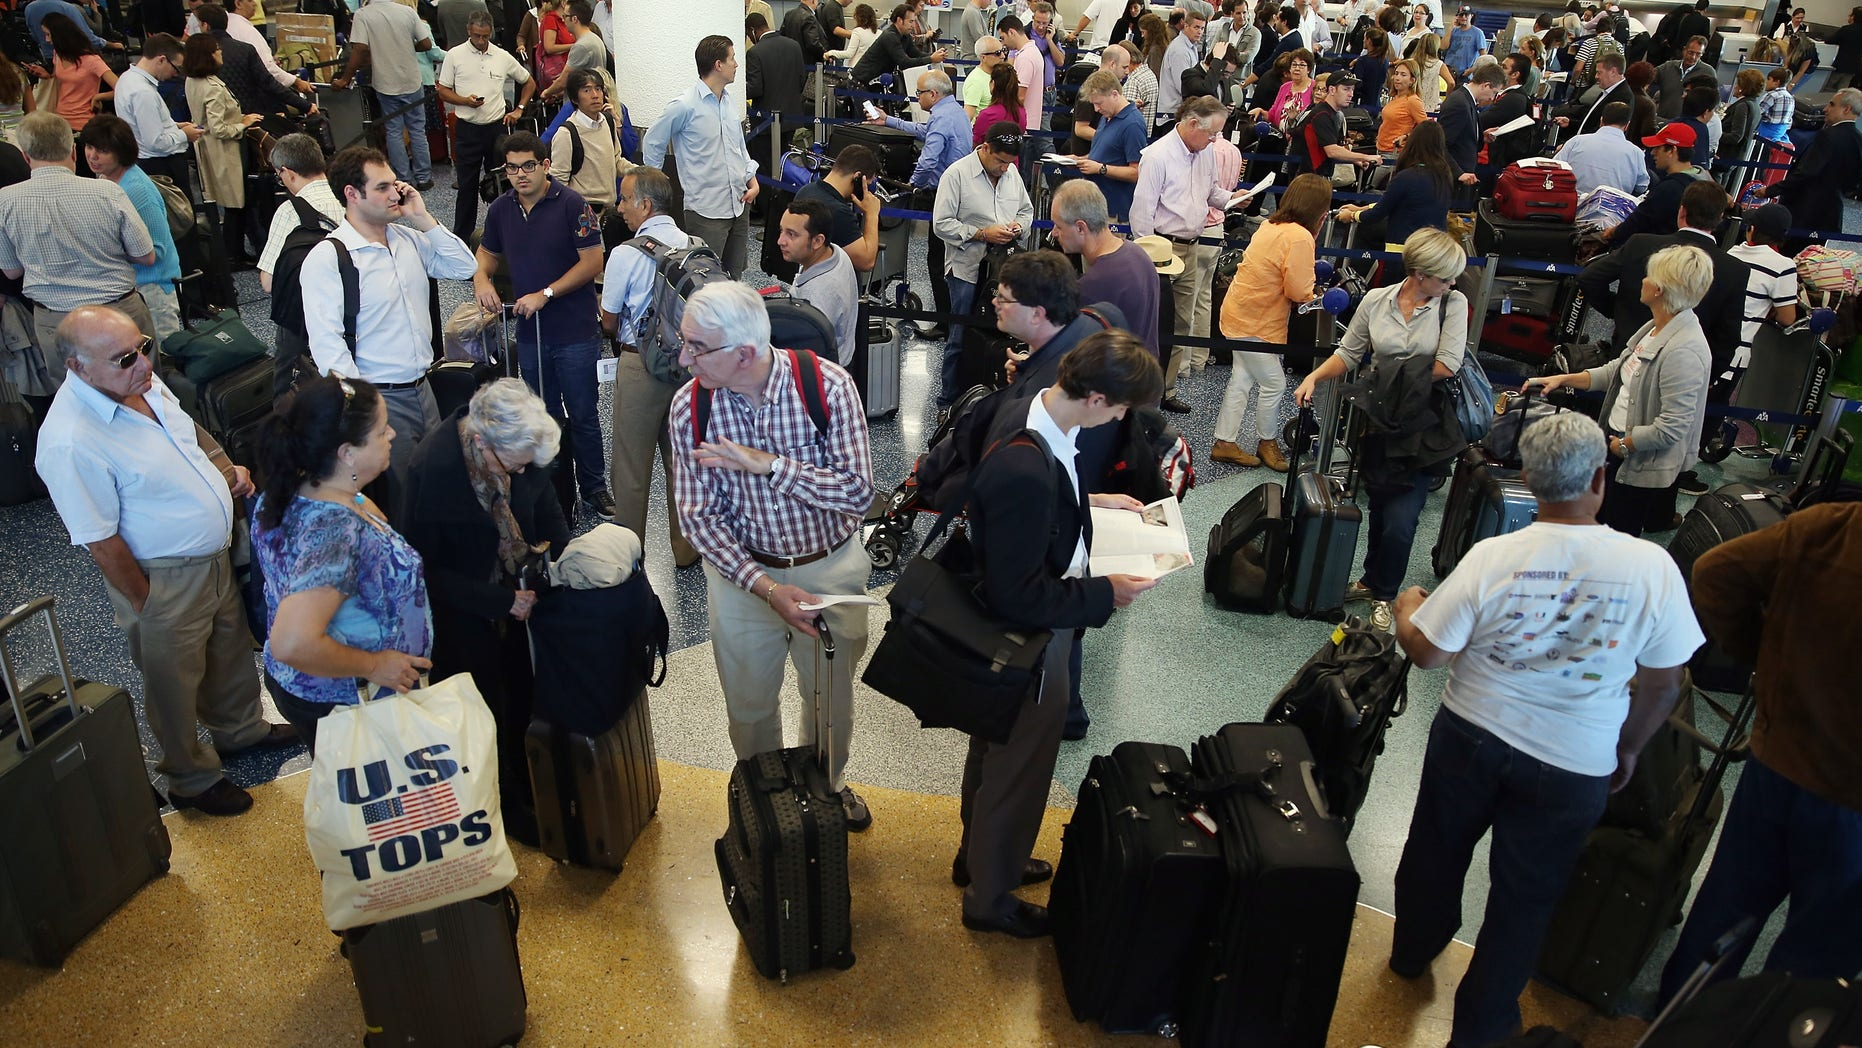 Passengers wait in line at Miami International Airport on April 16, 2013 in Miami, Florida. (Photo by Joe Raedle/Getty Images)